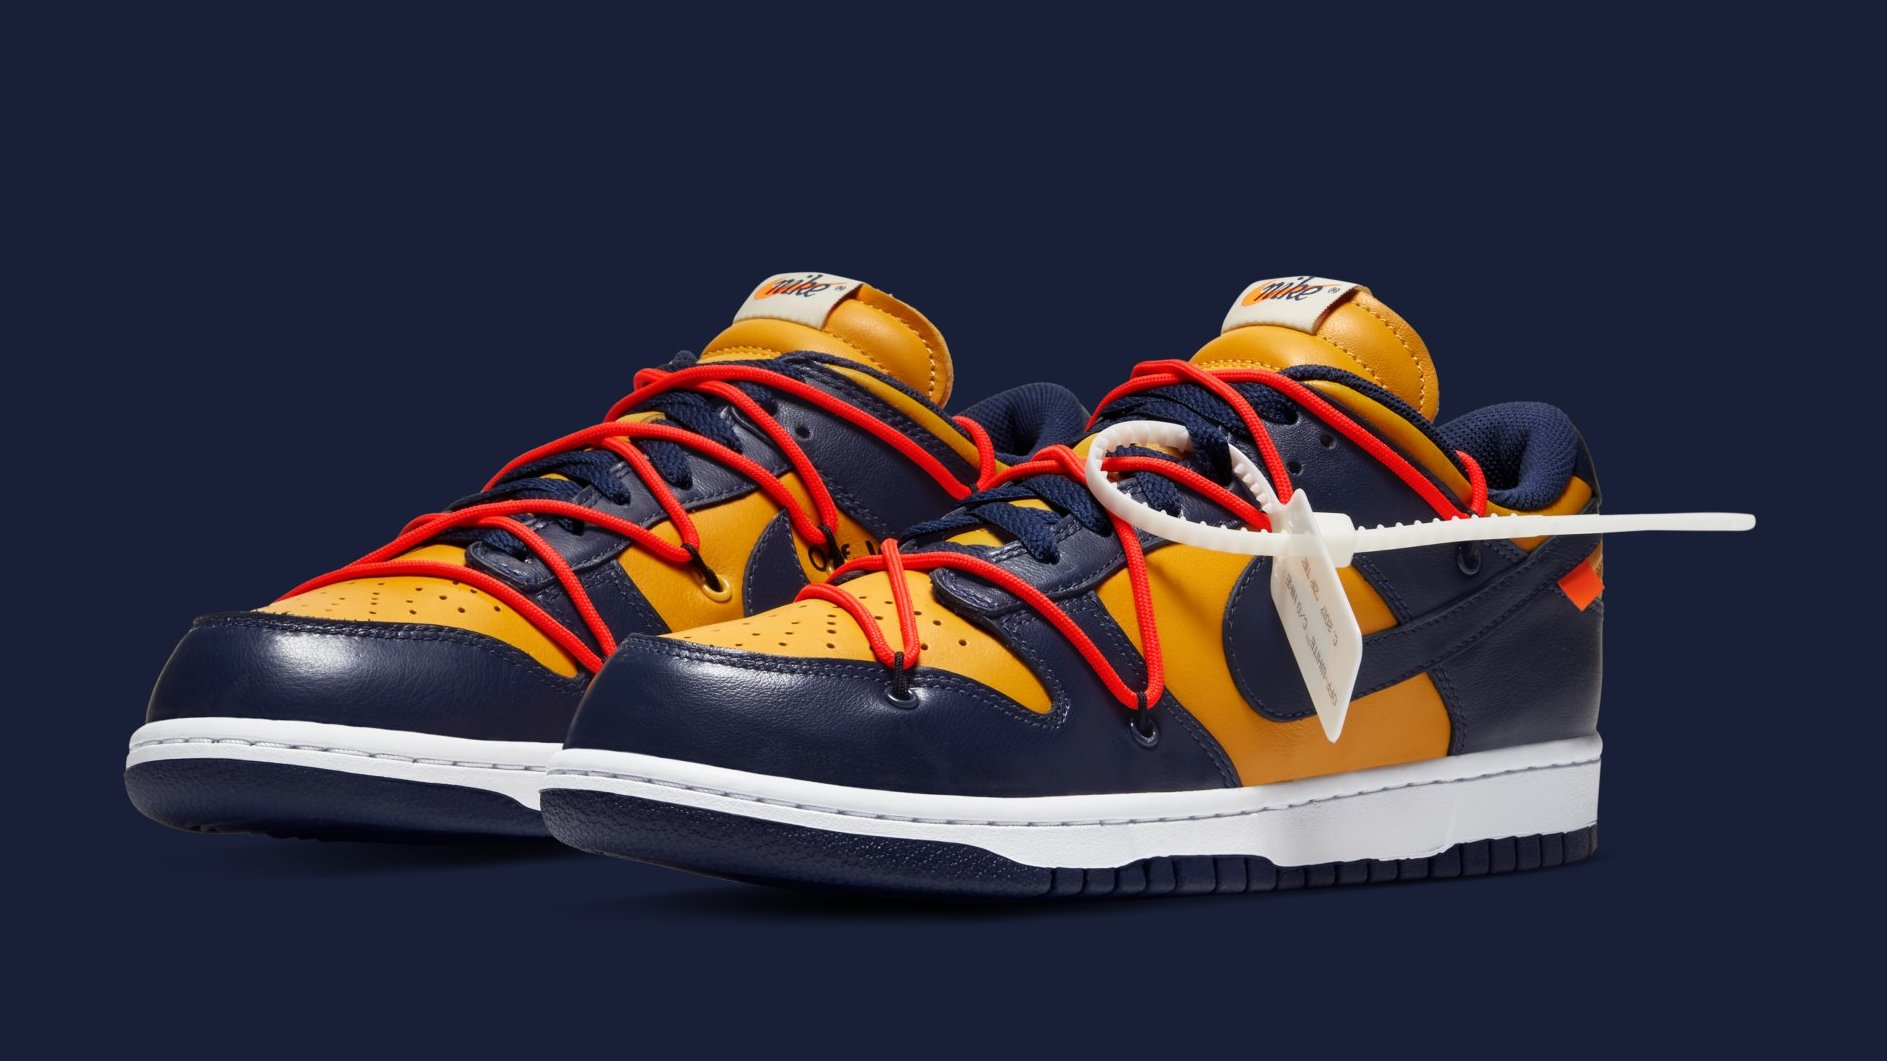 Hamburguesa Están familiarizados Contrato  Off-White x Nike Dunk Low Leather Collection Release Date | Sole ...